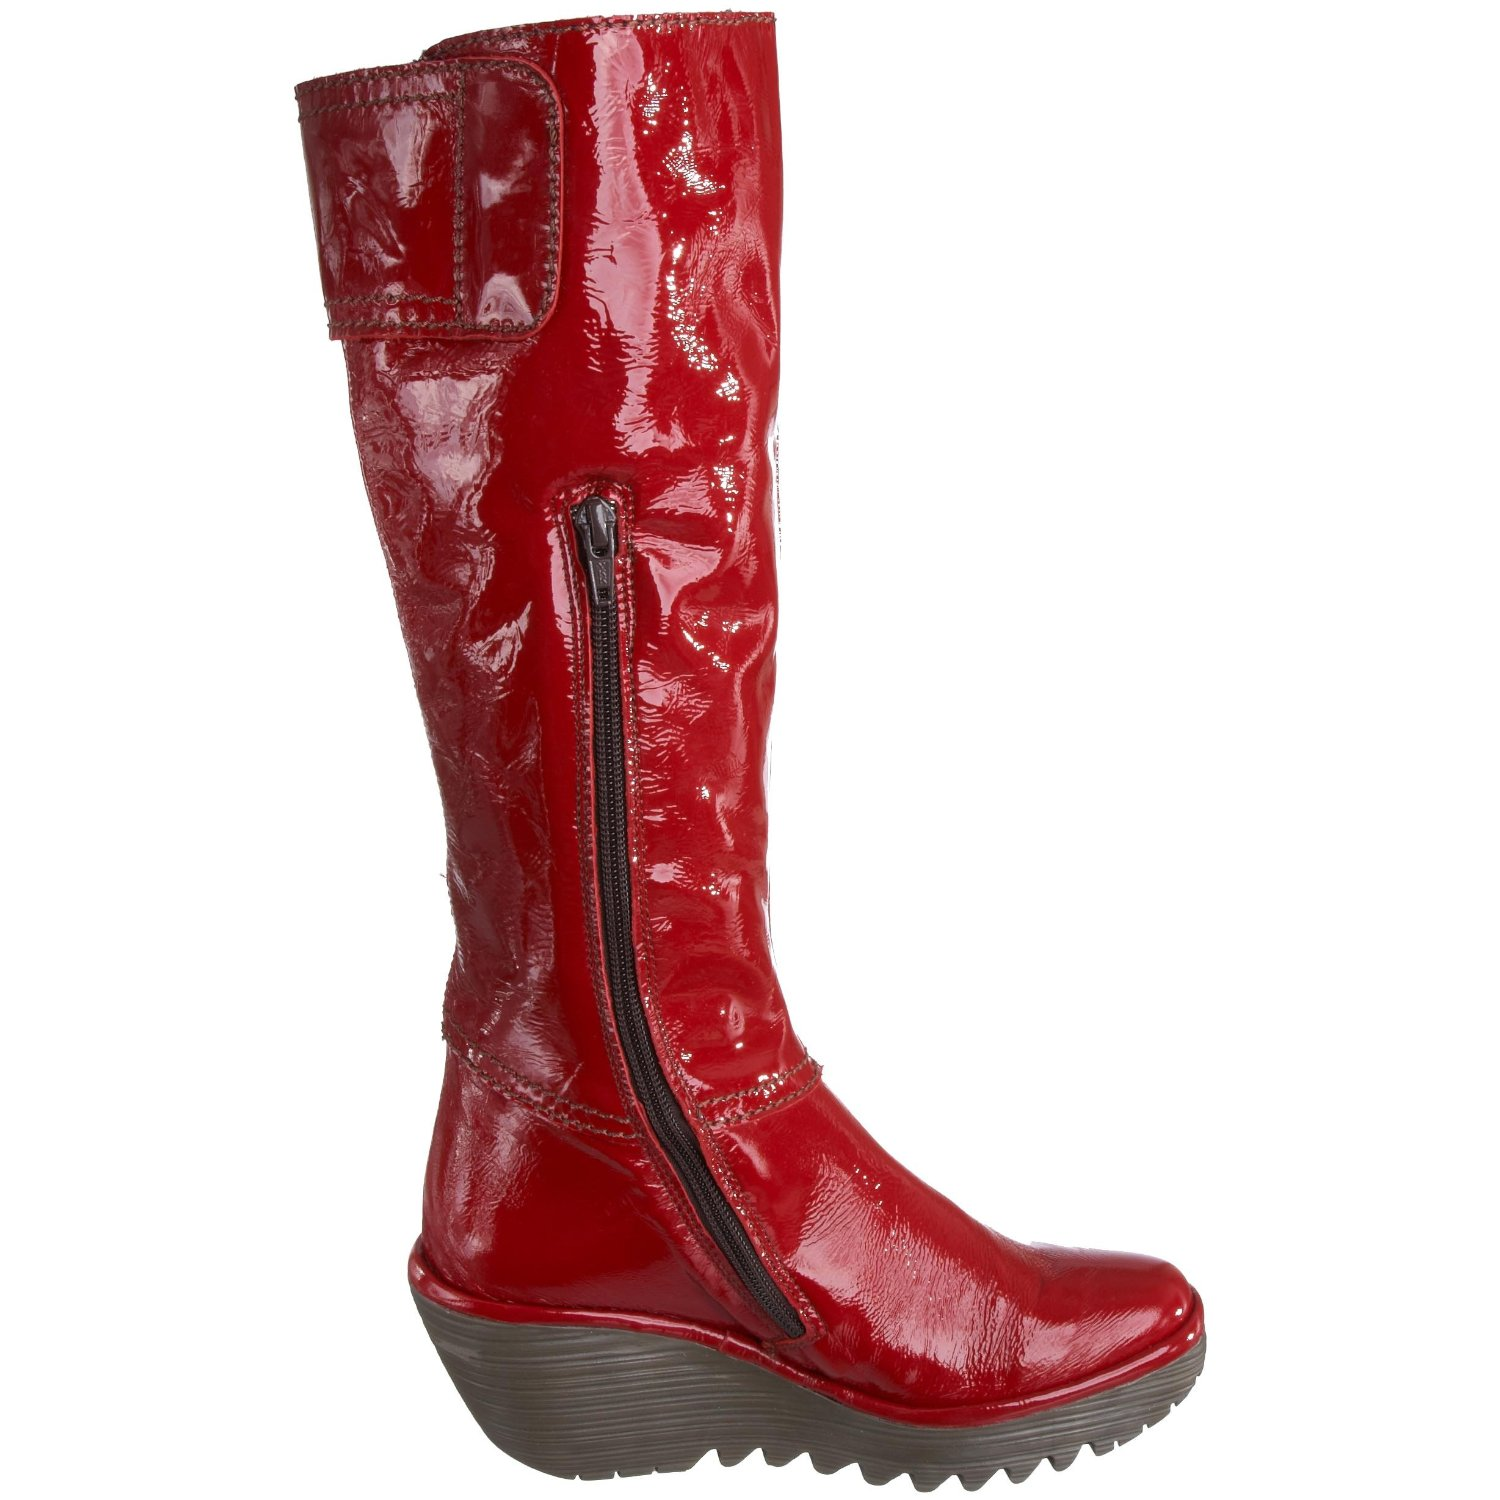 Original Book Of Womens Red Leather Boots In Spain By James | Sobatapk.com